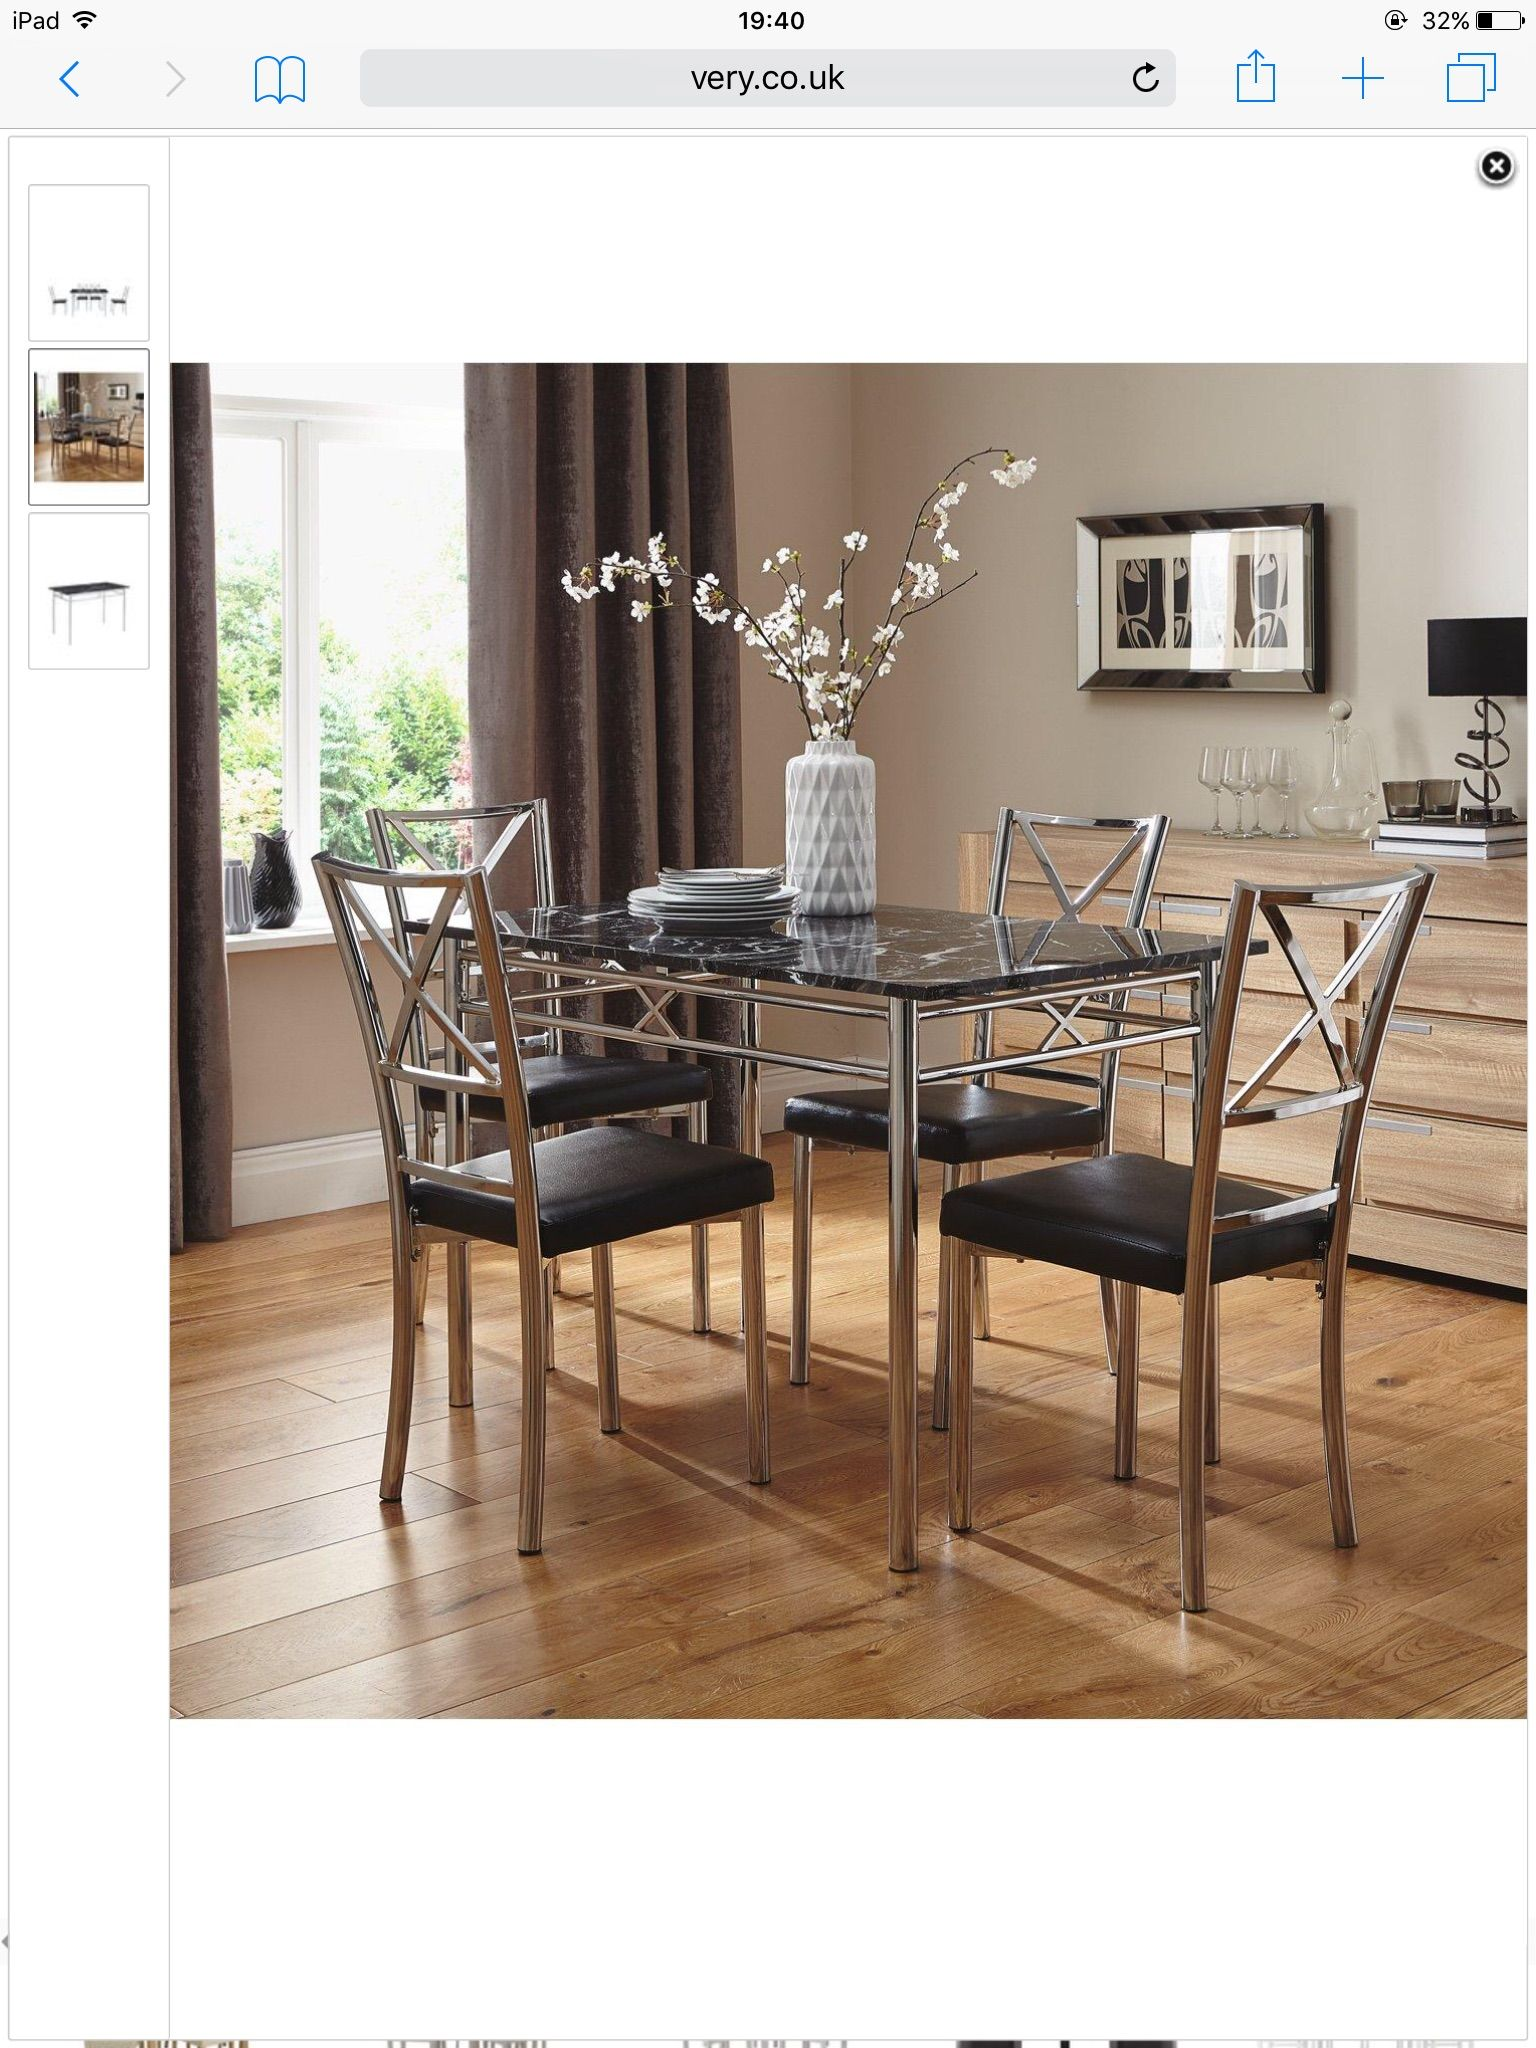 Very marble effect table stainless steel chair legs black